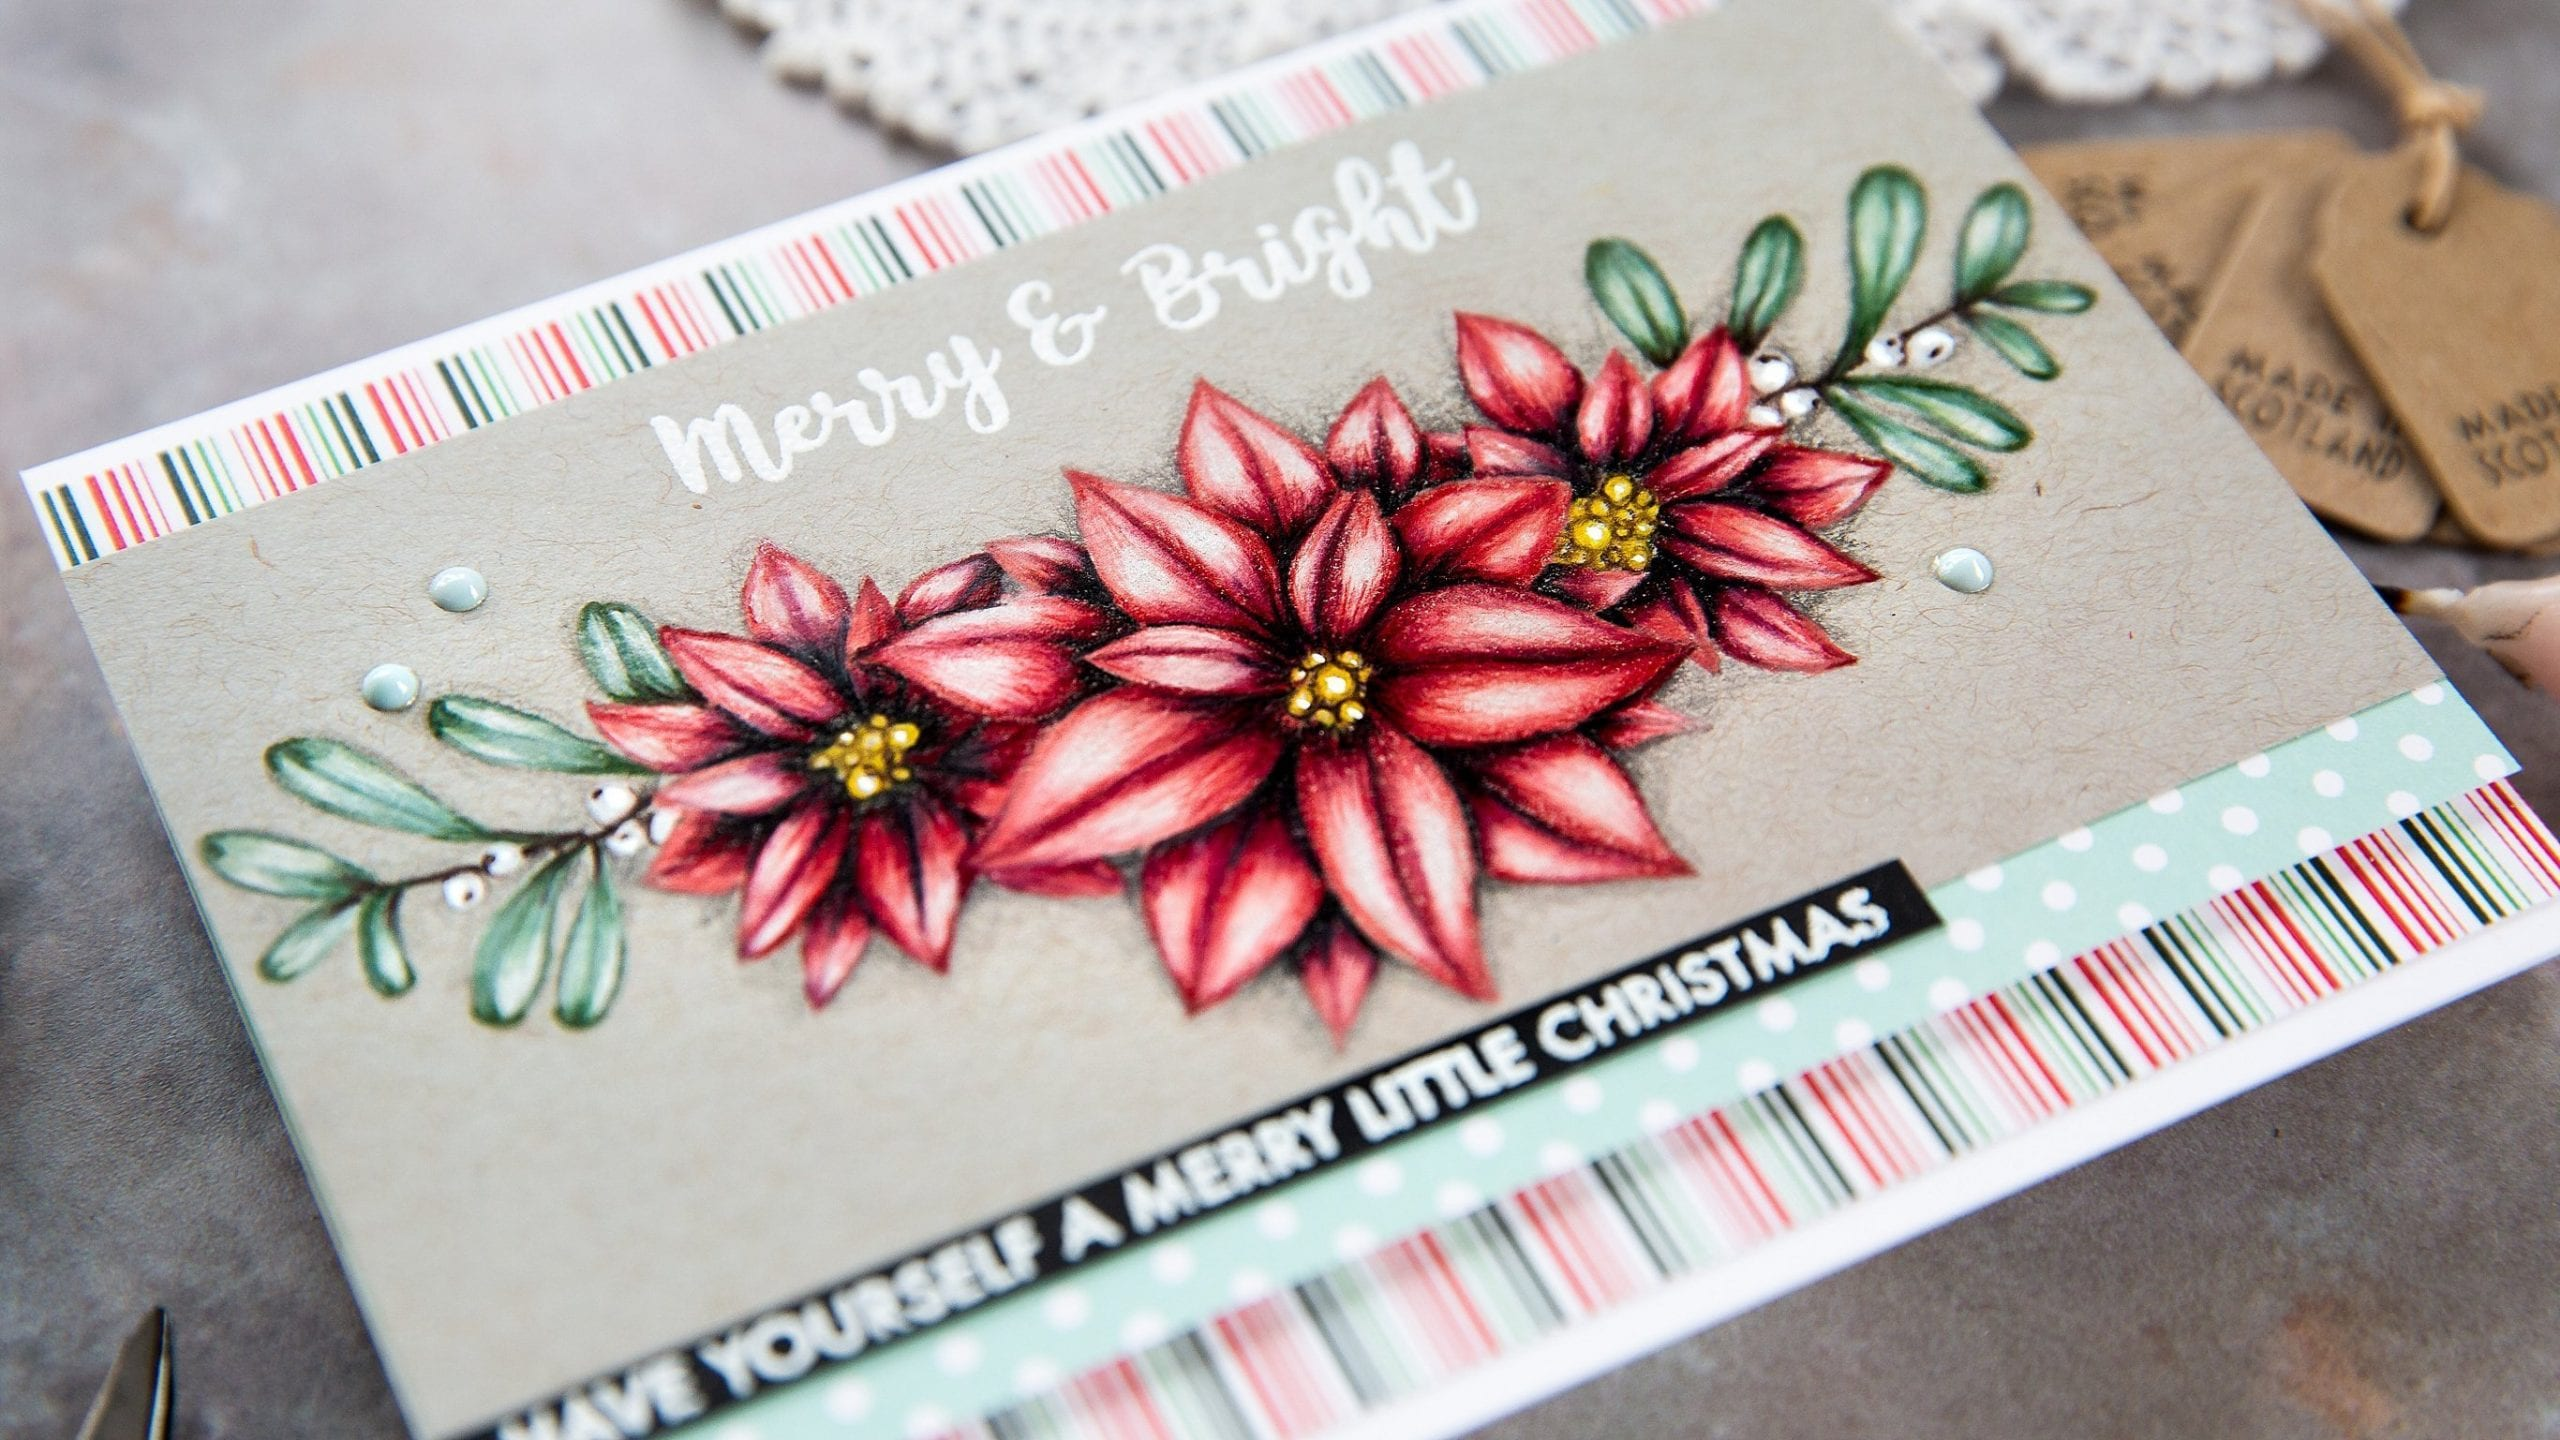 Video - pencil colouring poinsettias. Handmade Holiday Christmas card by Debby Hughes using supplies from Paper Rose. Find out more here: https://limedoodledesign.com/2019/09/video-paper-rose-stamptember/